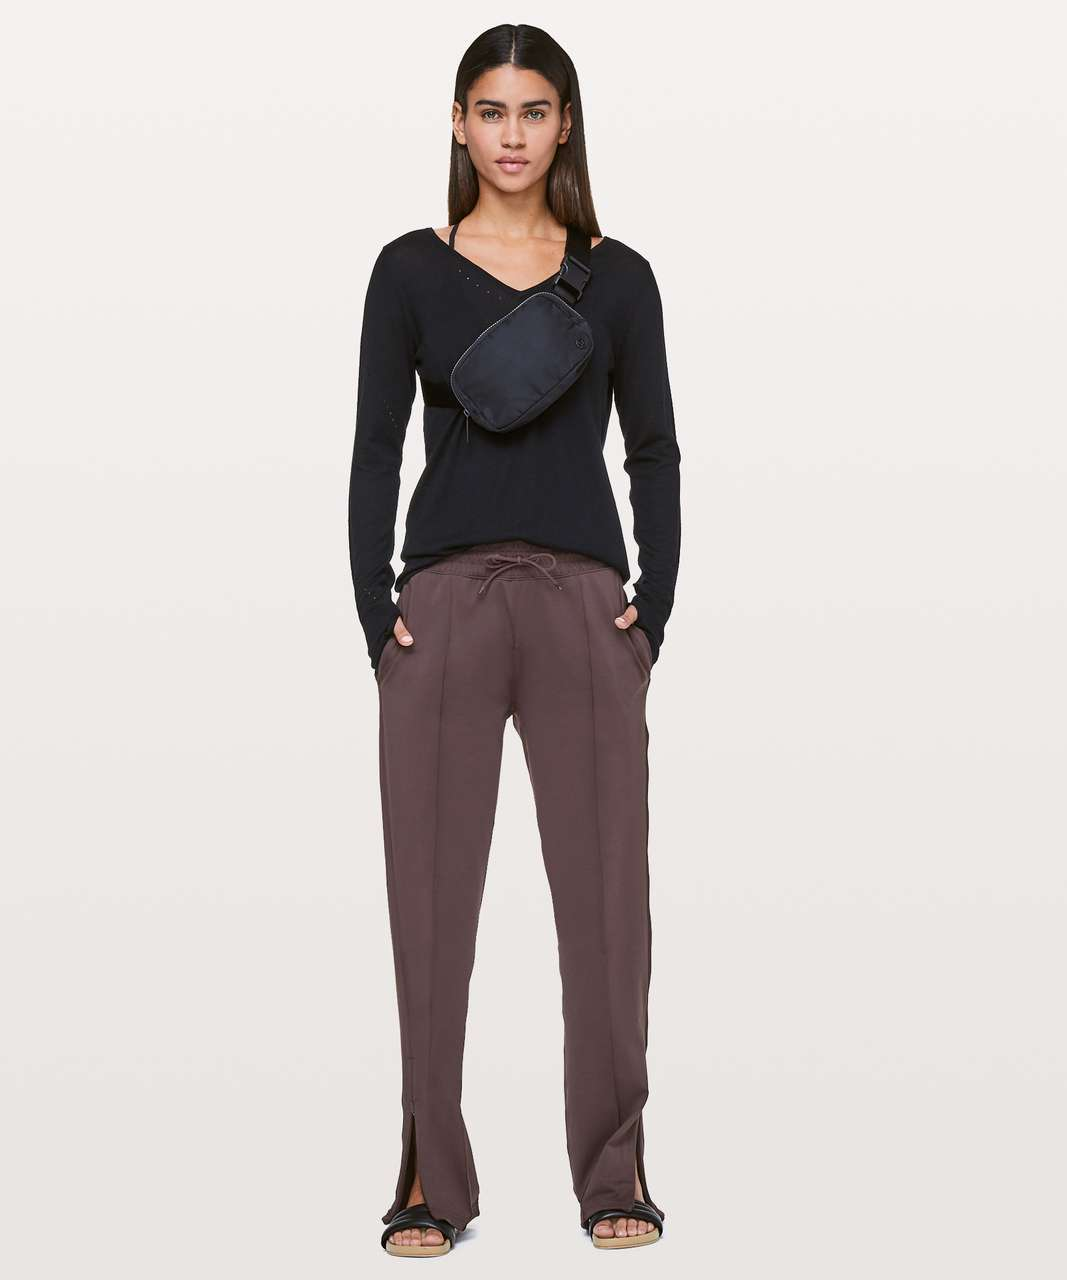 a2f707668 Lululemon Greatest Stride Pant  31